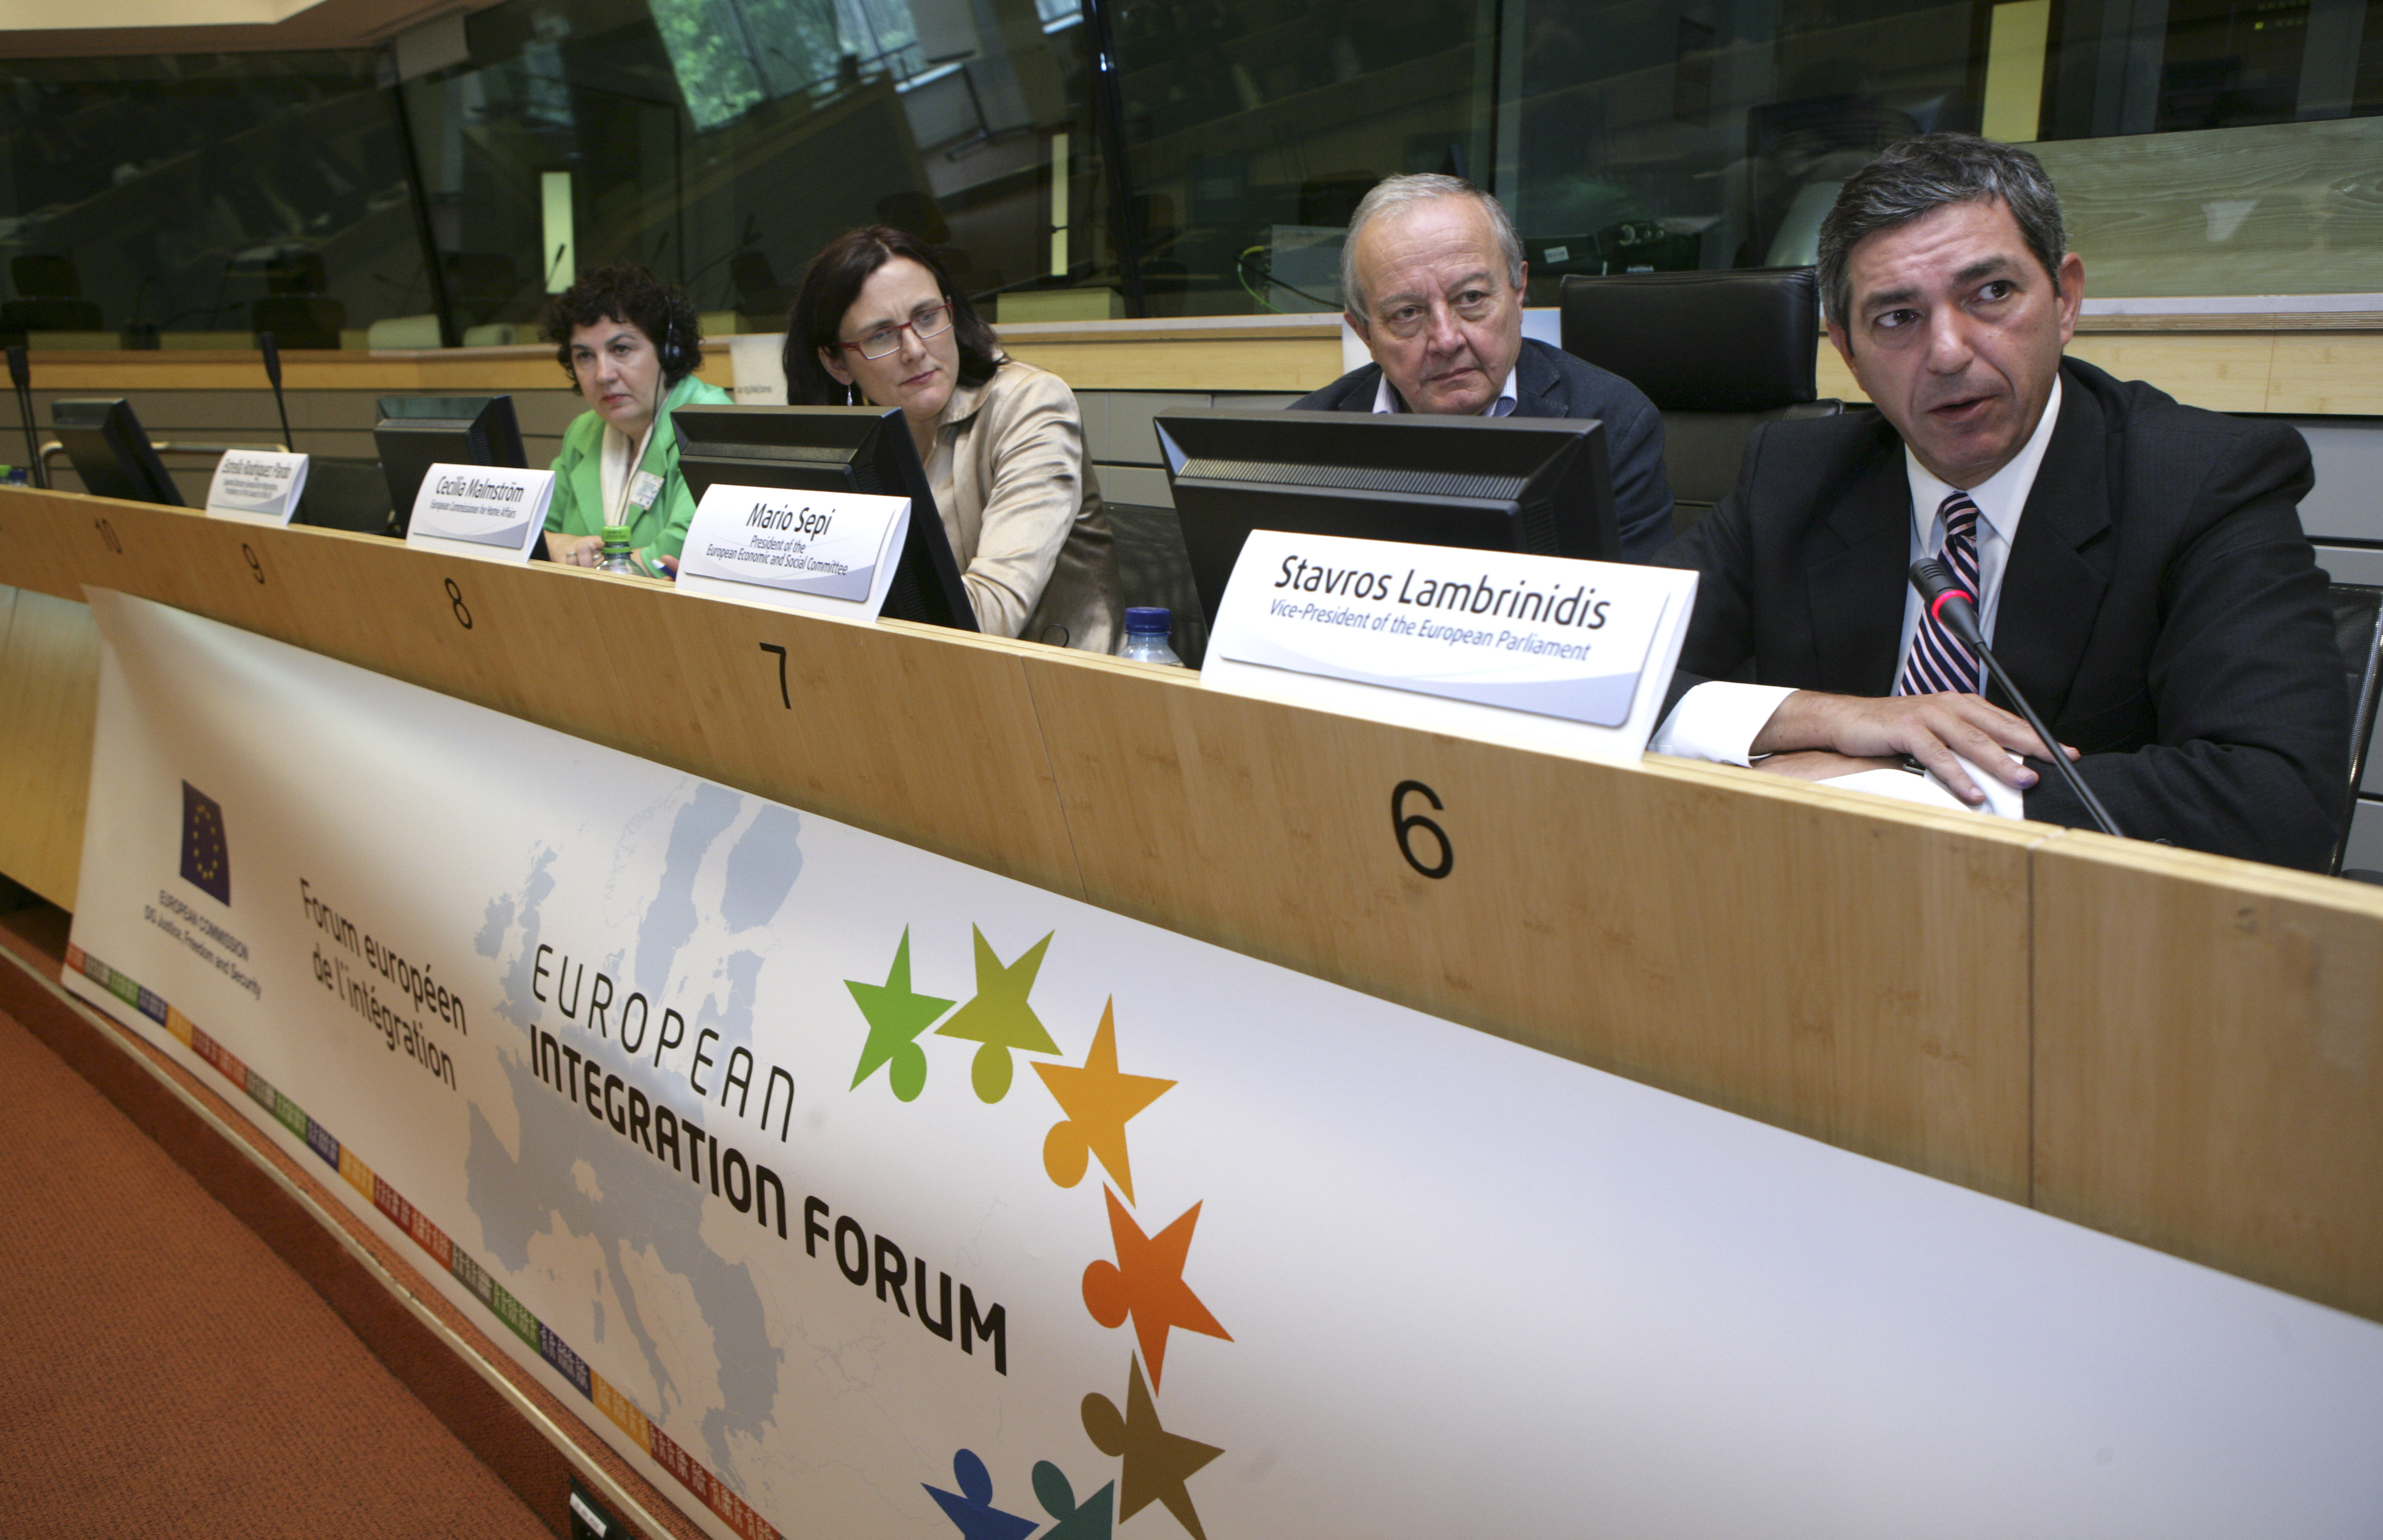 04. Stavros Lambrinidis, Vice-President of the European Parliament, in the opening session